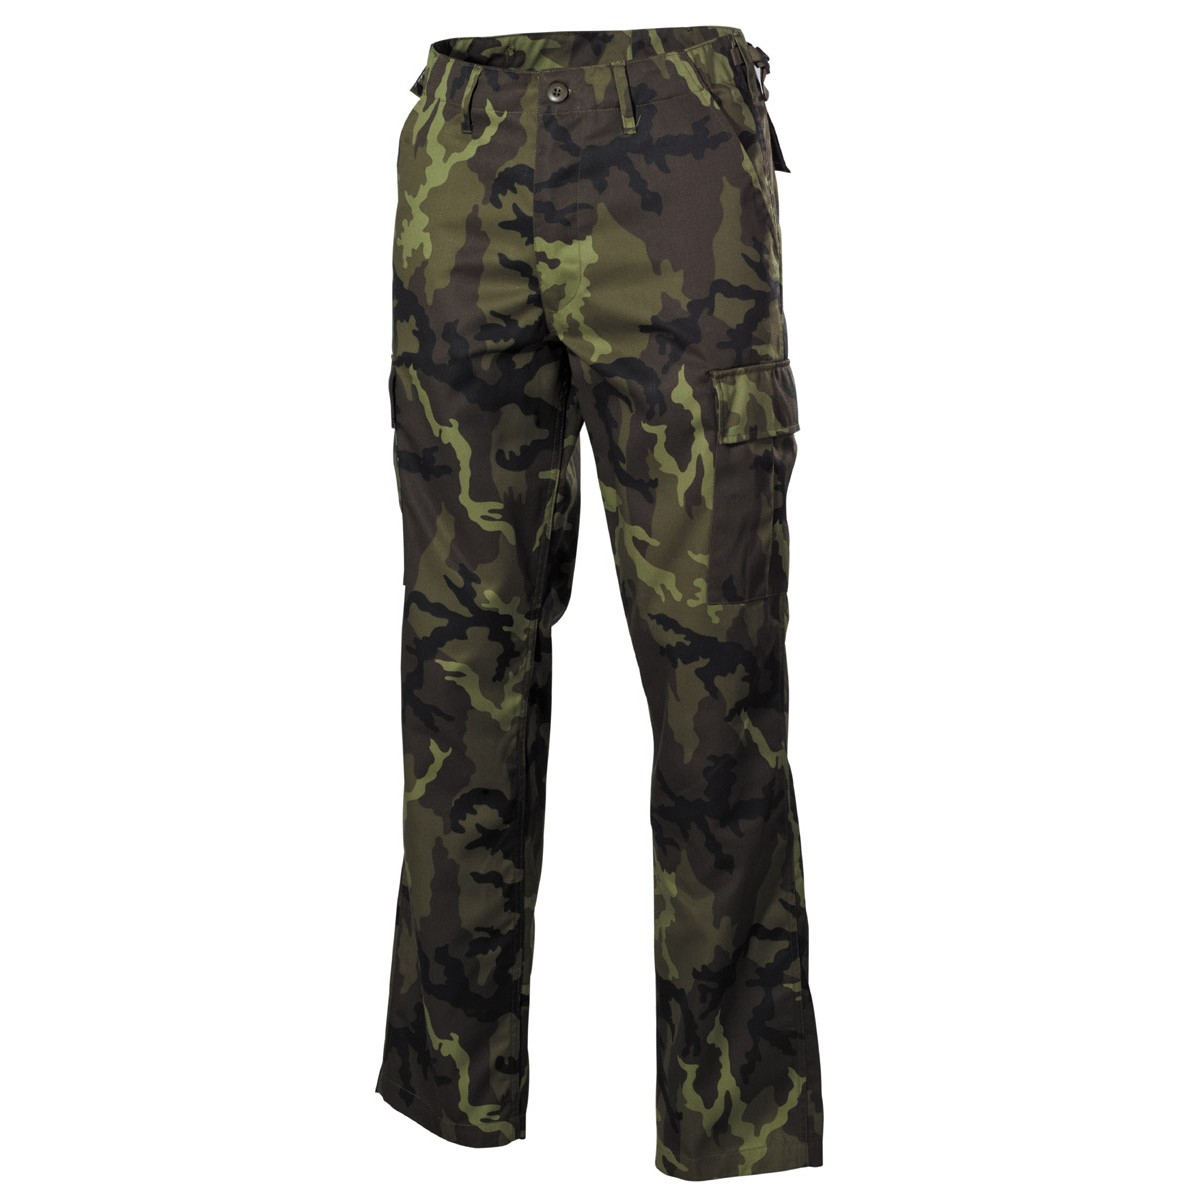 CZ Army M95 Camo Pattern BDU Field Pants